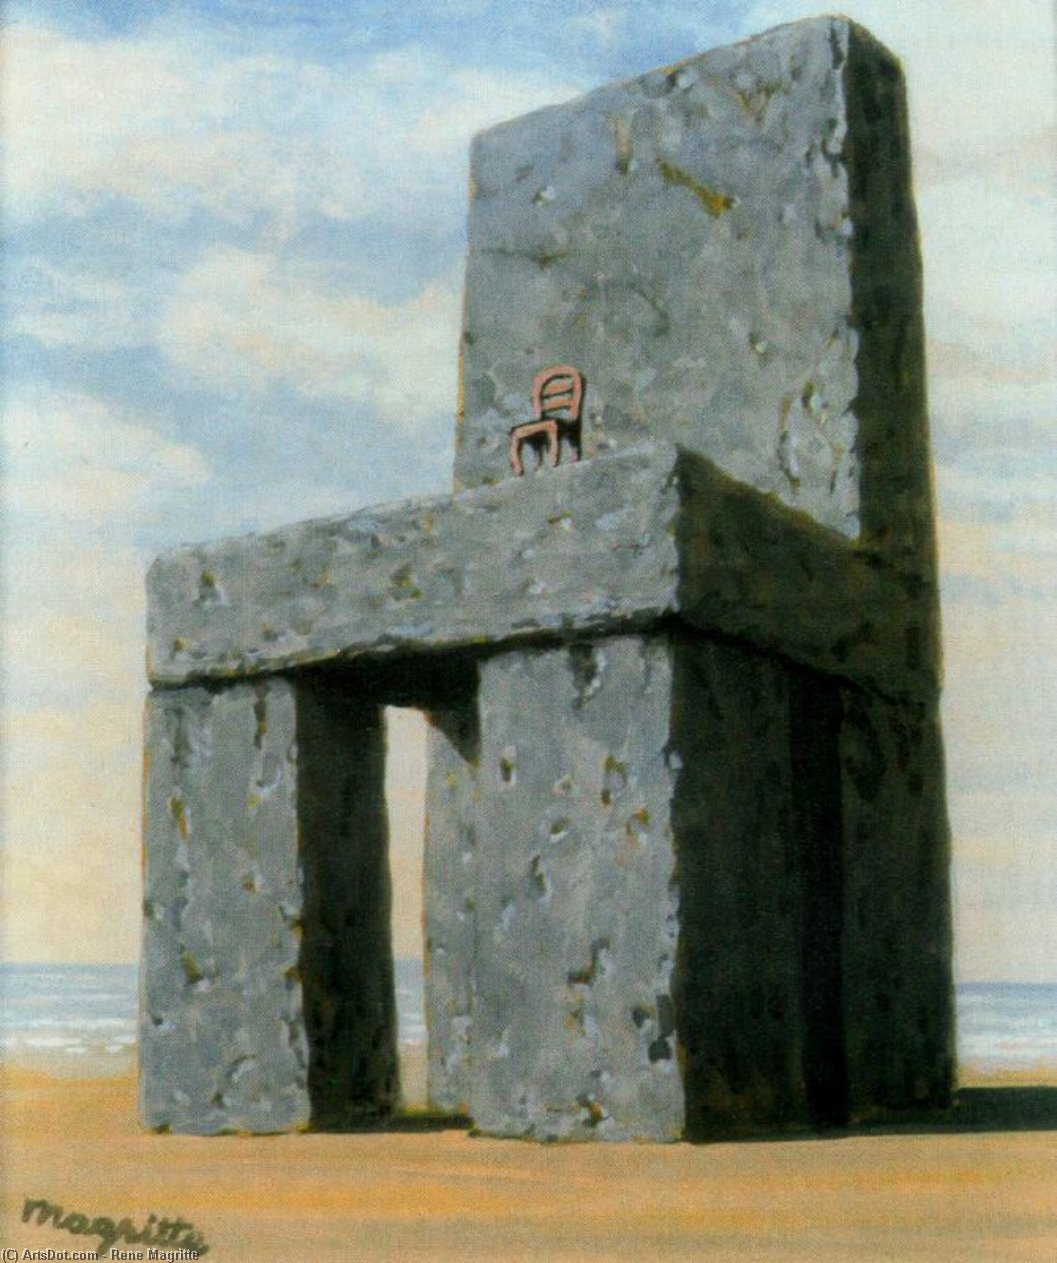 The legend of the centuries, 1950 by Rene Magritte (1898-1967, Belgium)